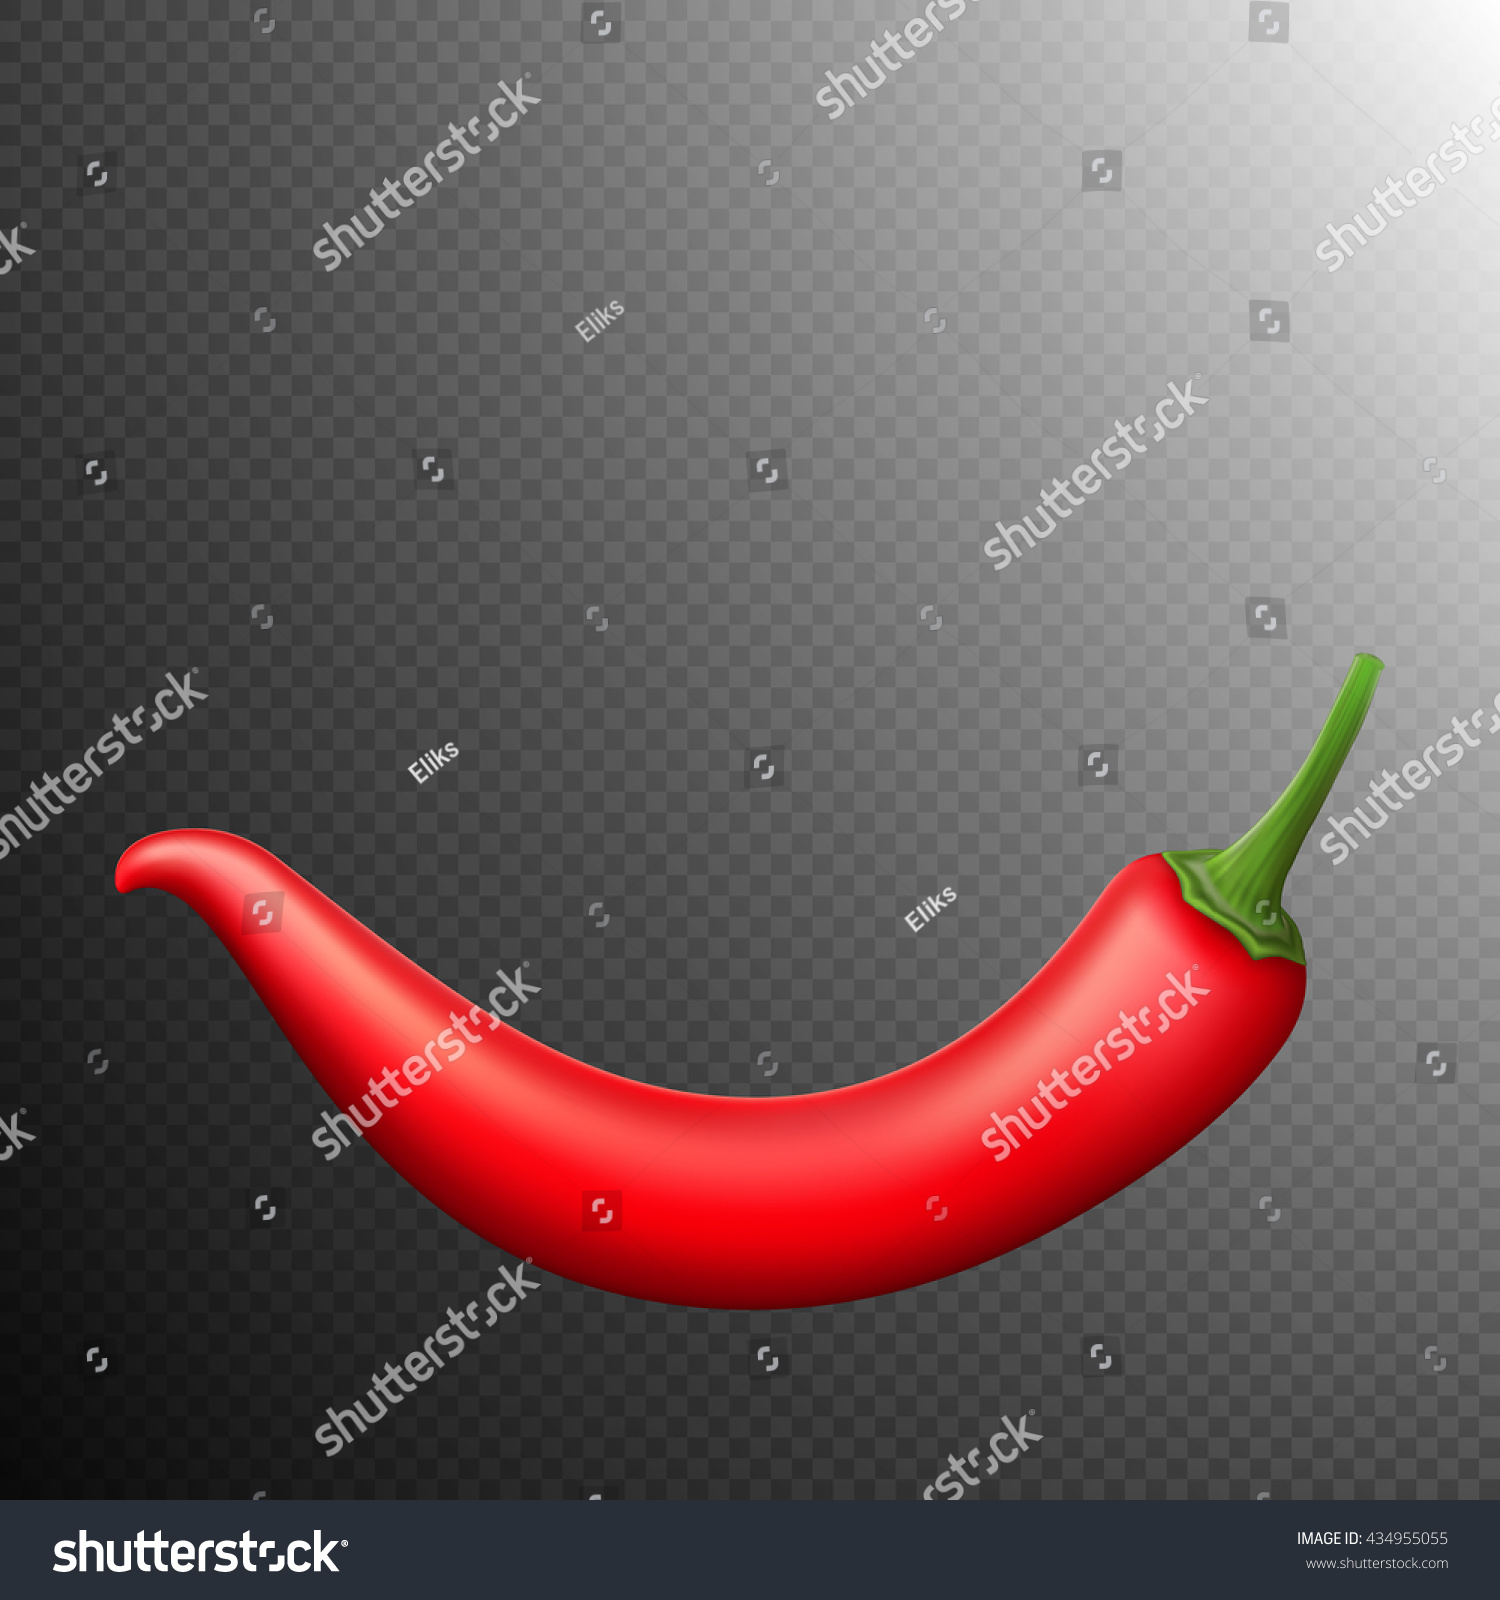 red chili pepper isolated on transparent stock vector